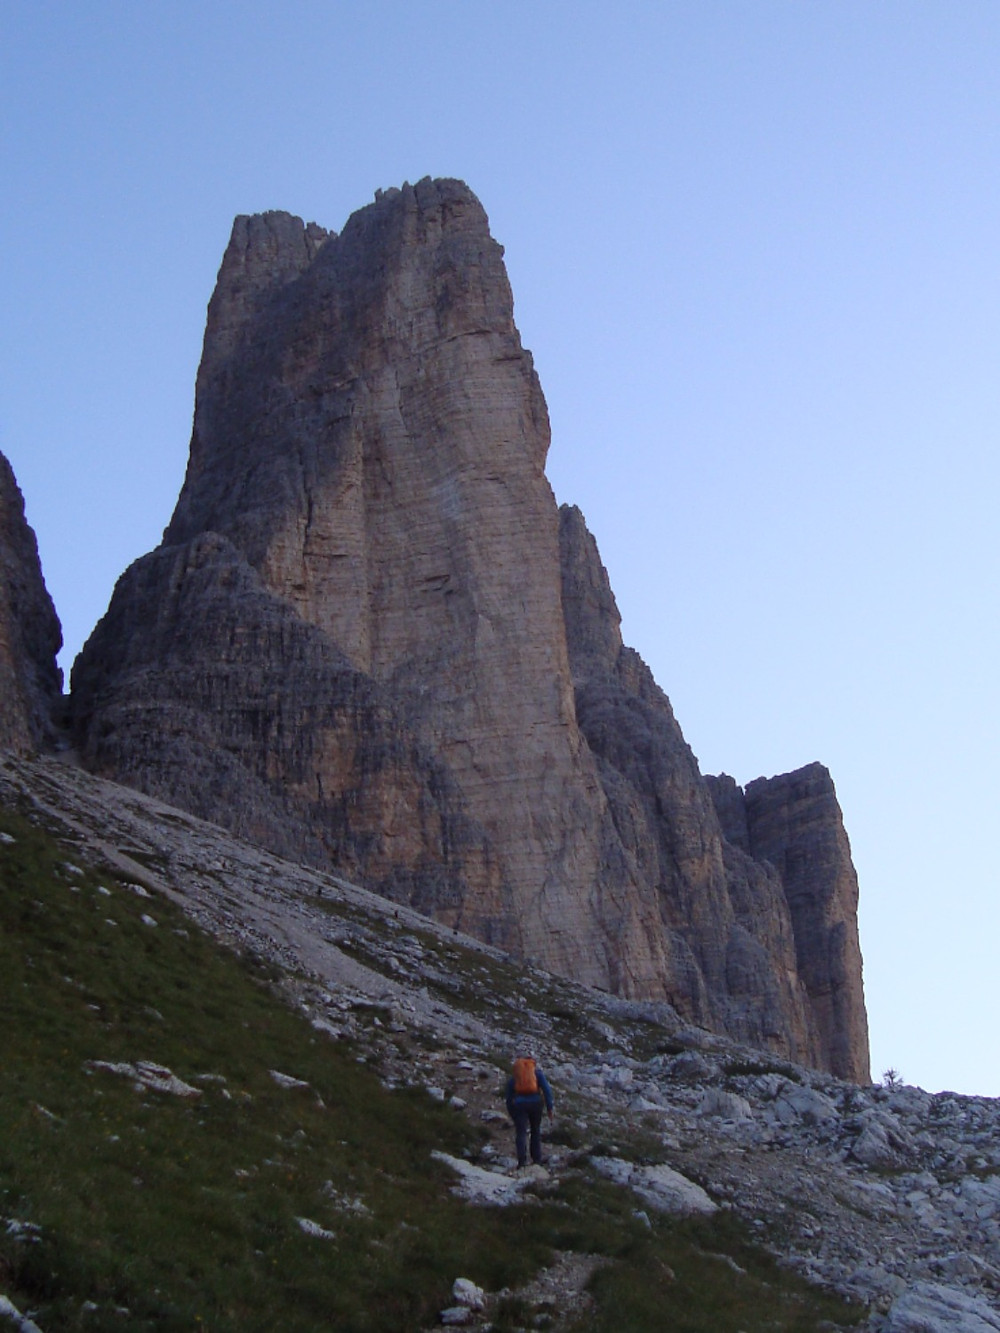 The Yellow Edge on Cima Piccola, climbs the obvious arete in 14 pitches